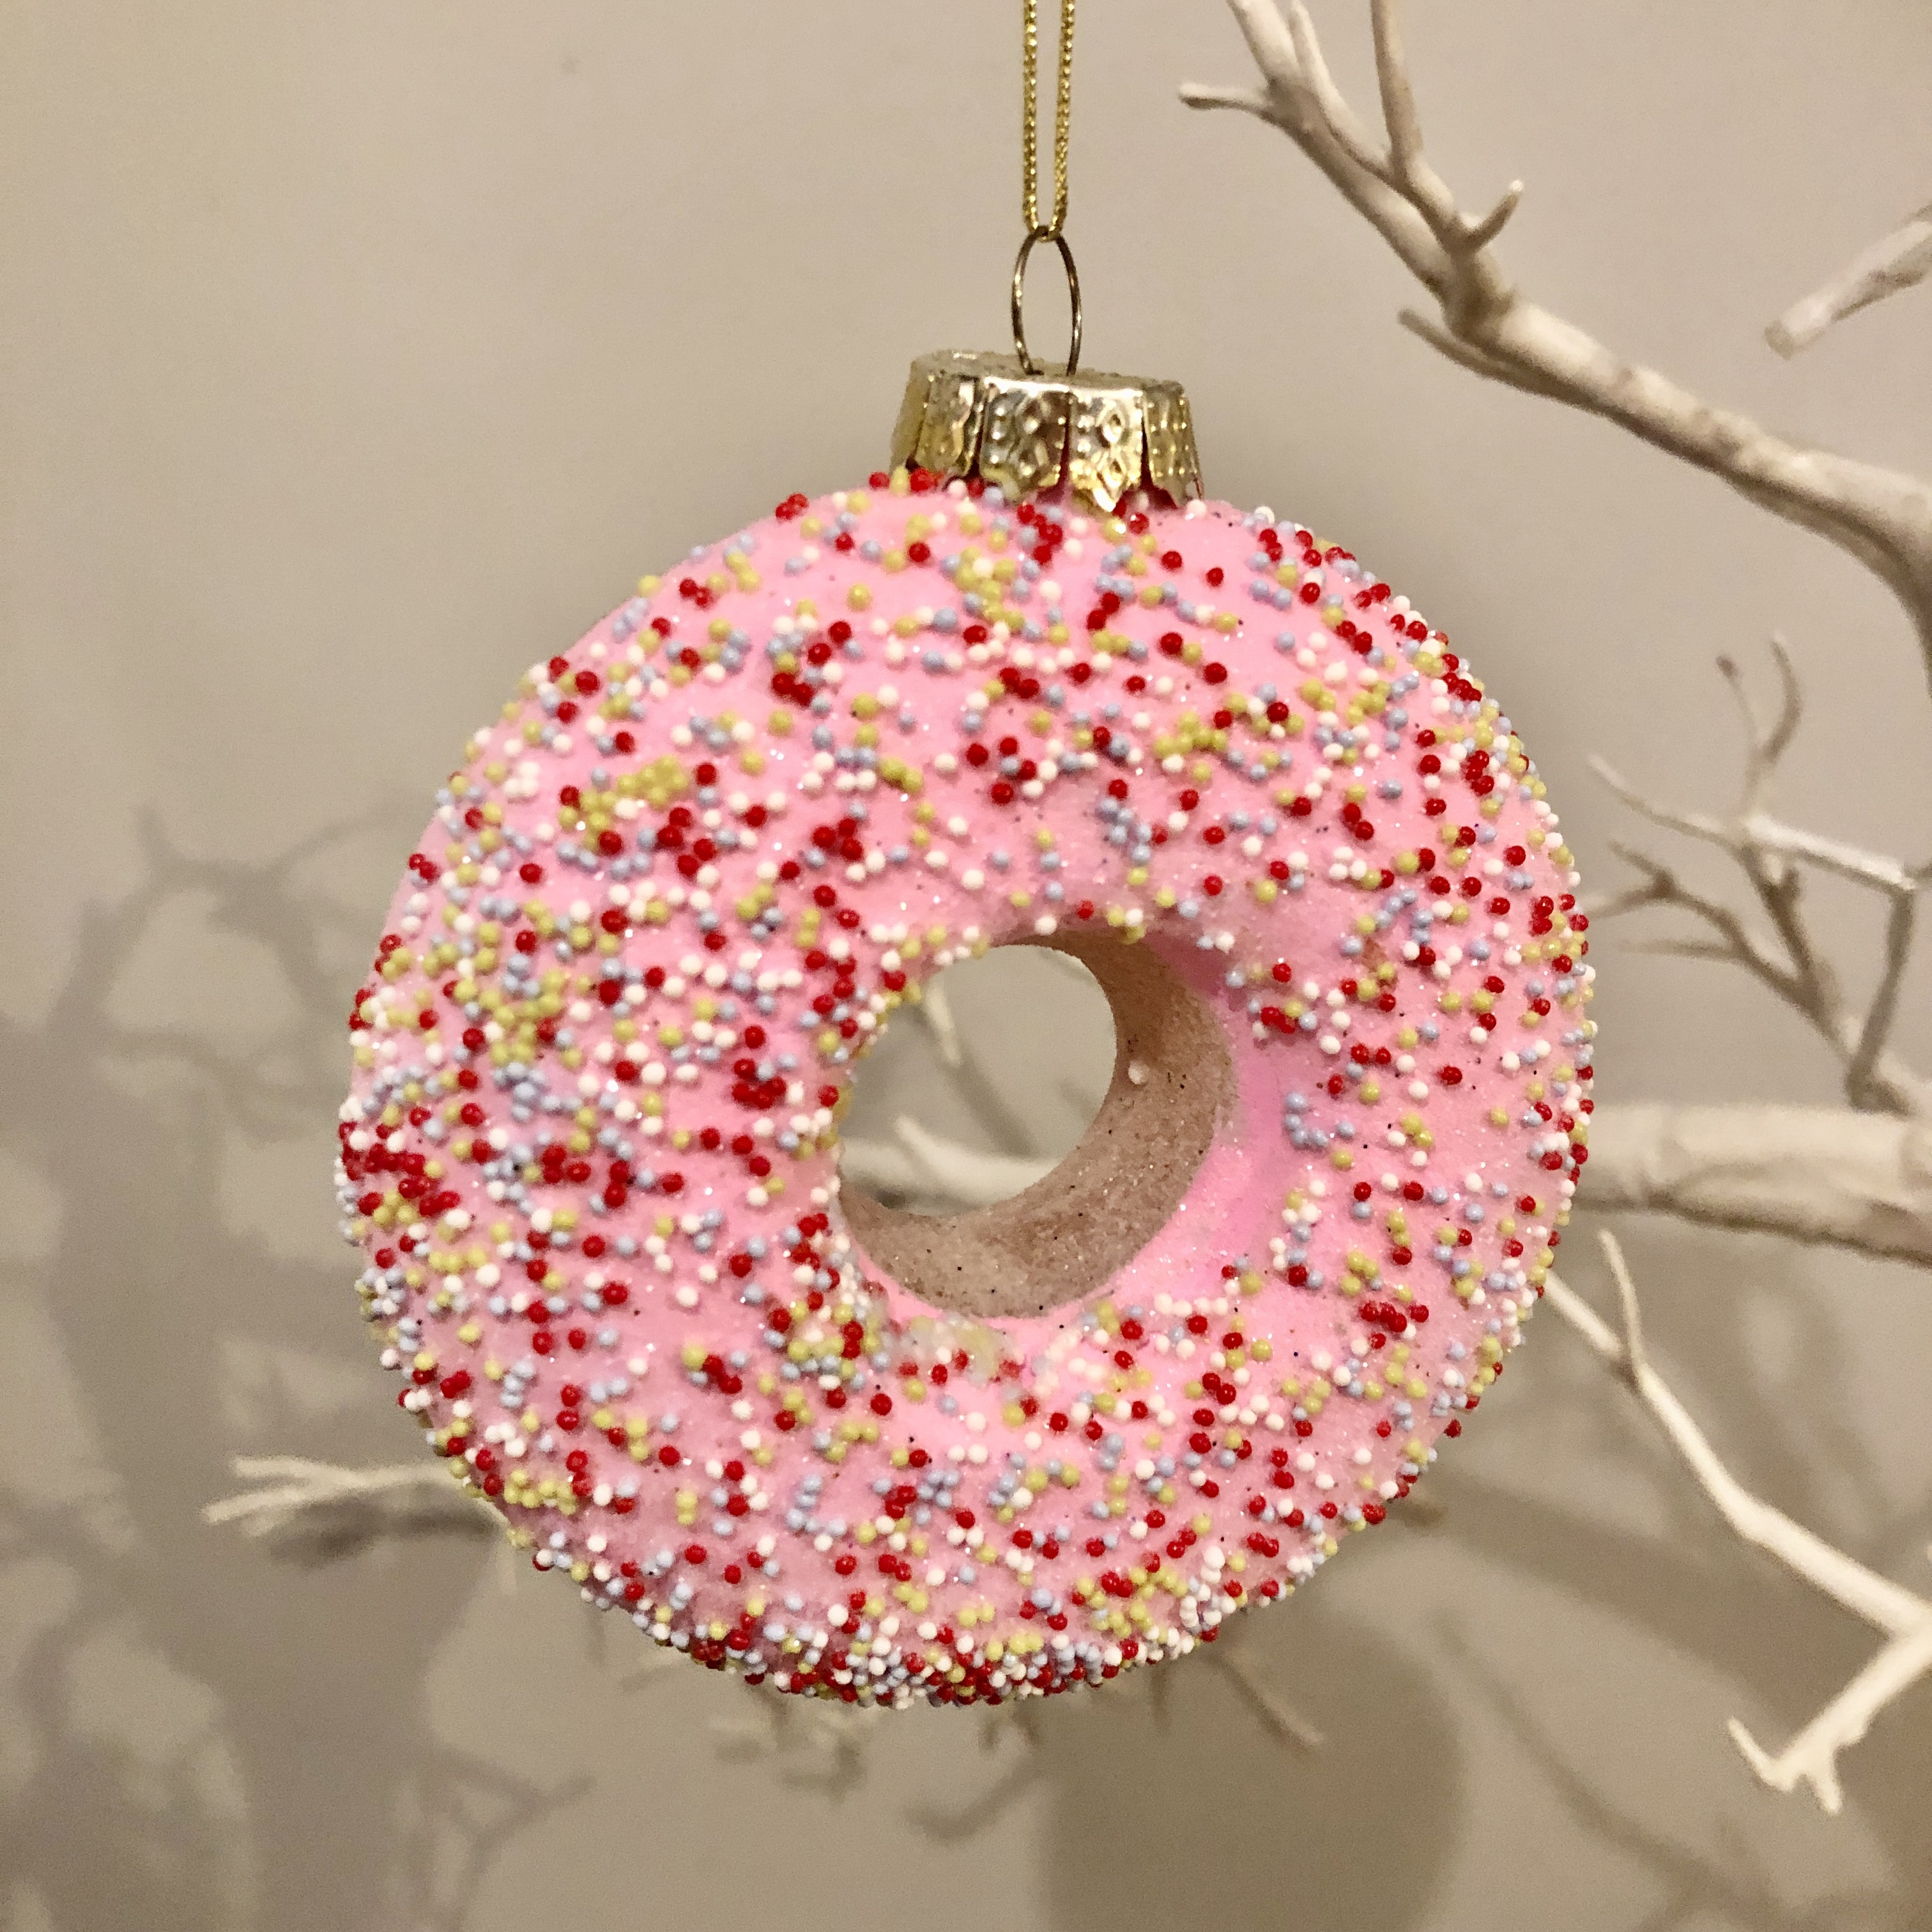 Glass Frosted donut bauble Christmas decoration by shoeless joe